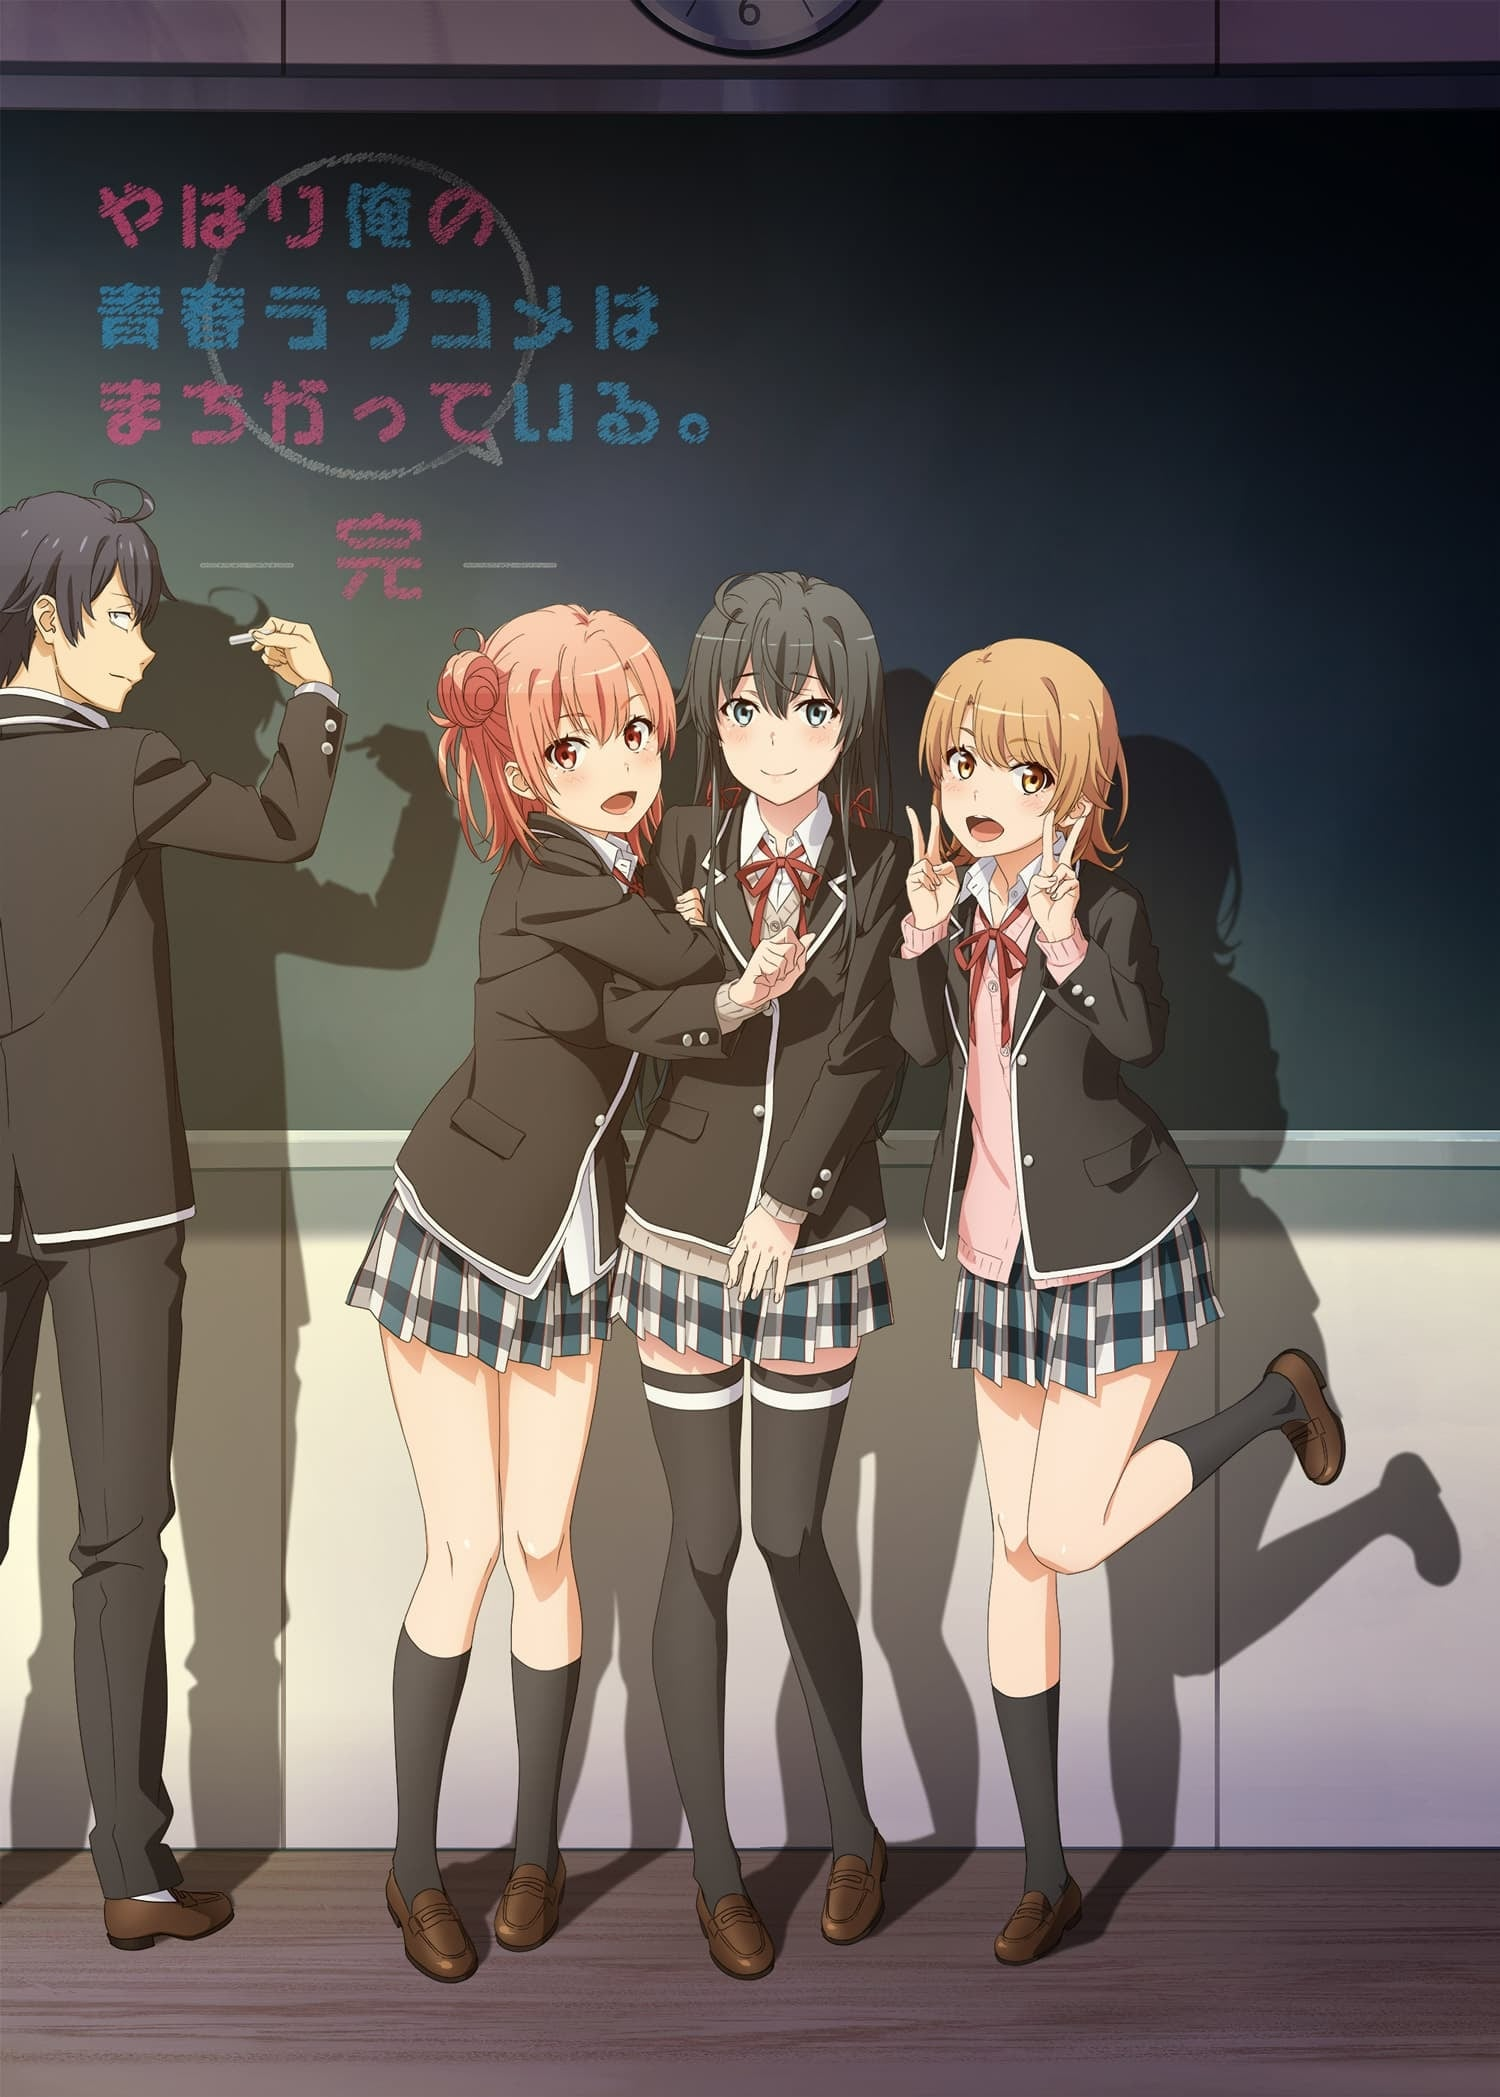 Yahari Ore no Seishun Lovecome wa Machigatte Iru. Season 3